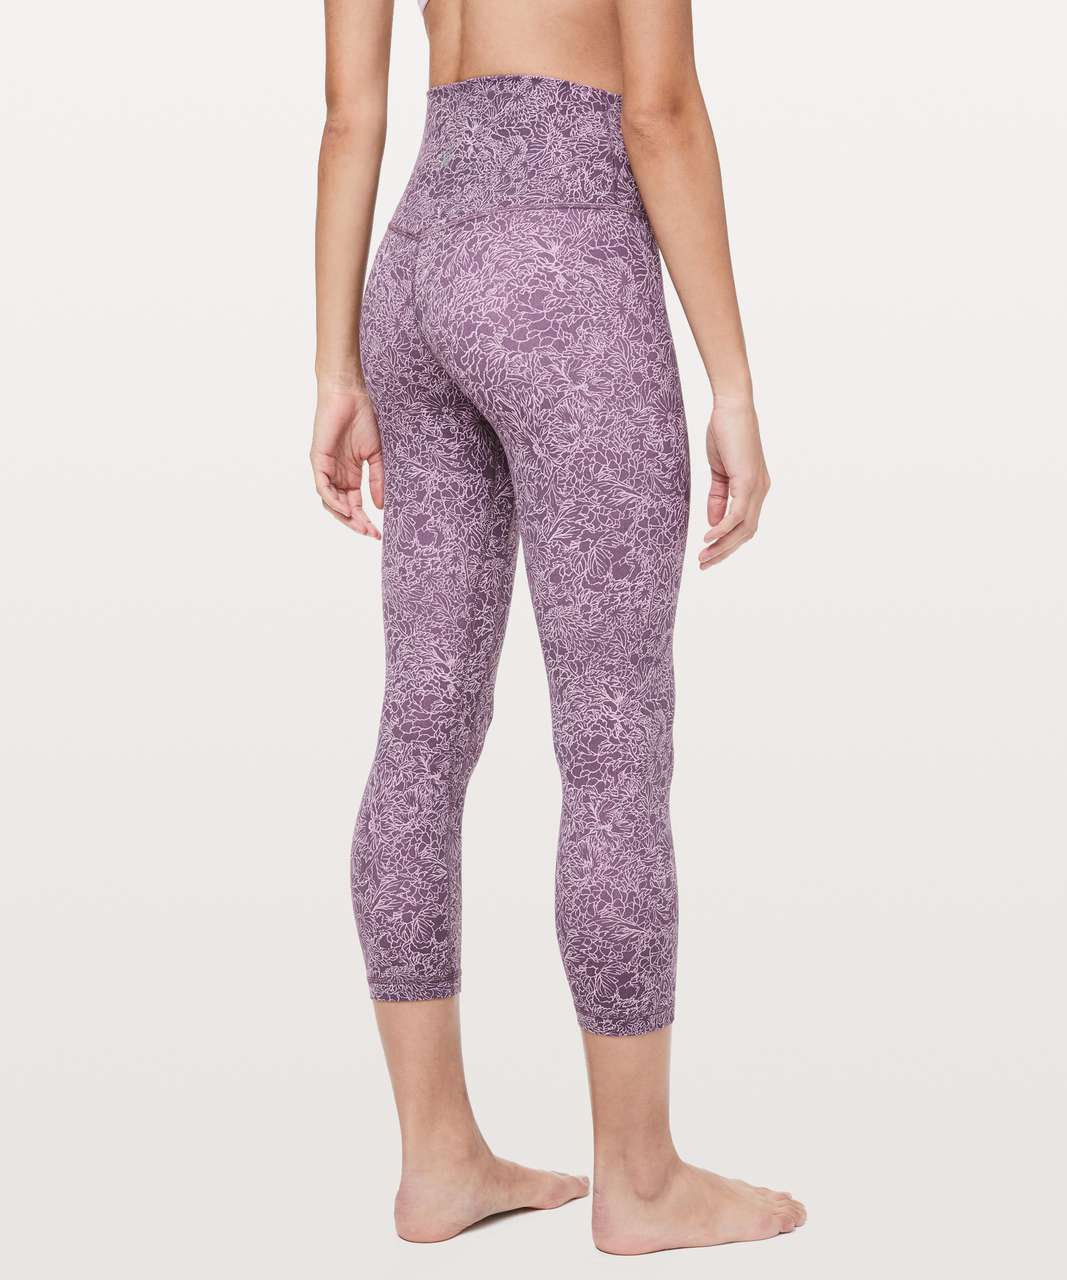 "Lululemon Align Crop *21"" - Arabesque Antoinette Smoky Quartz"